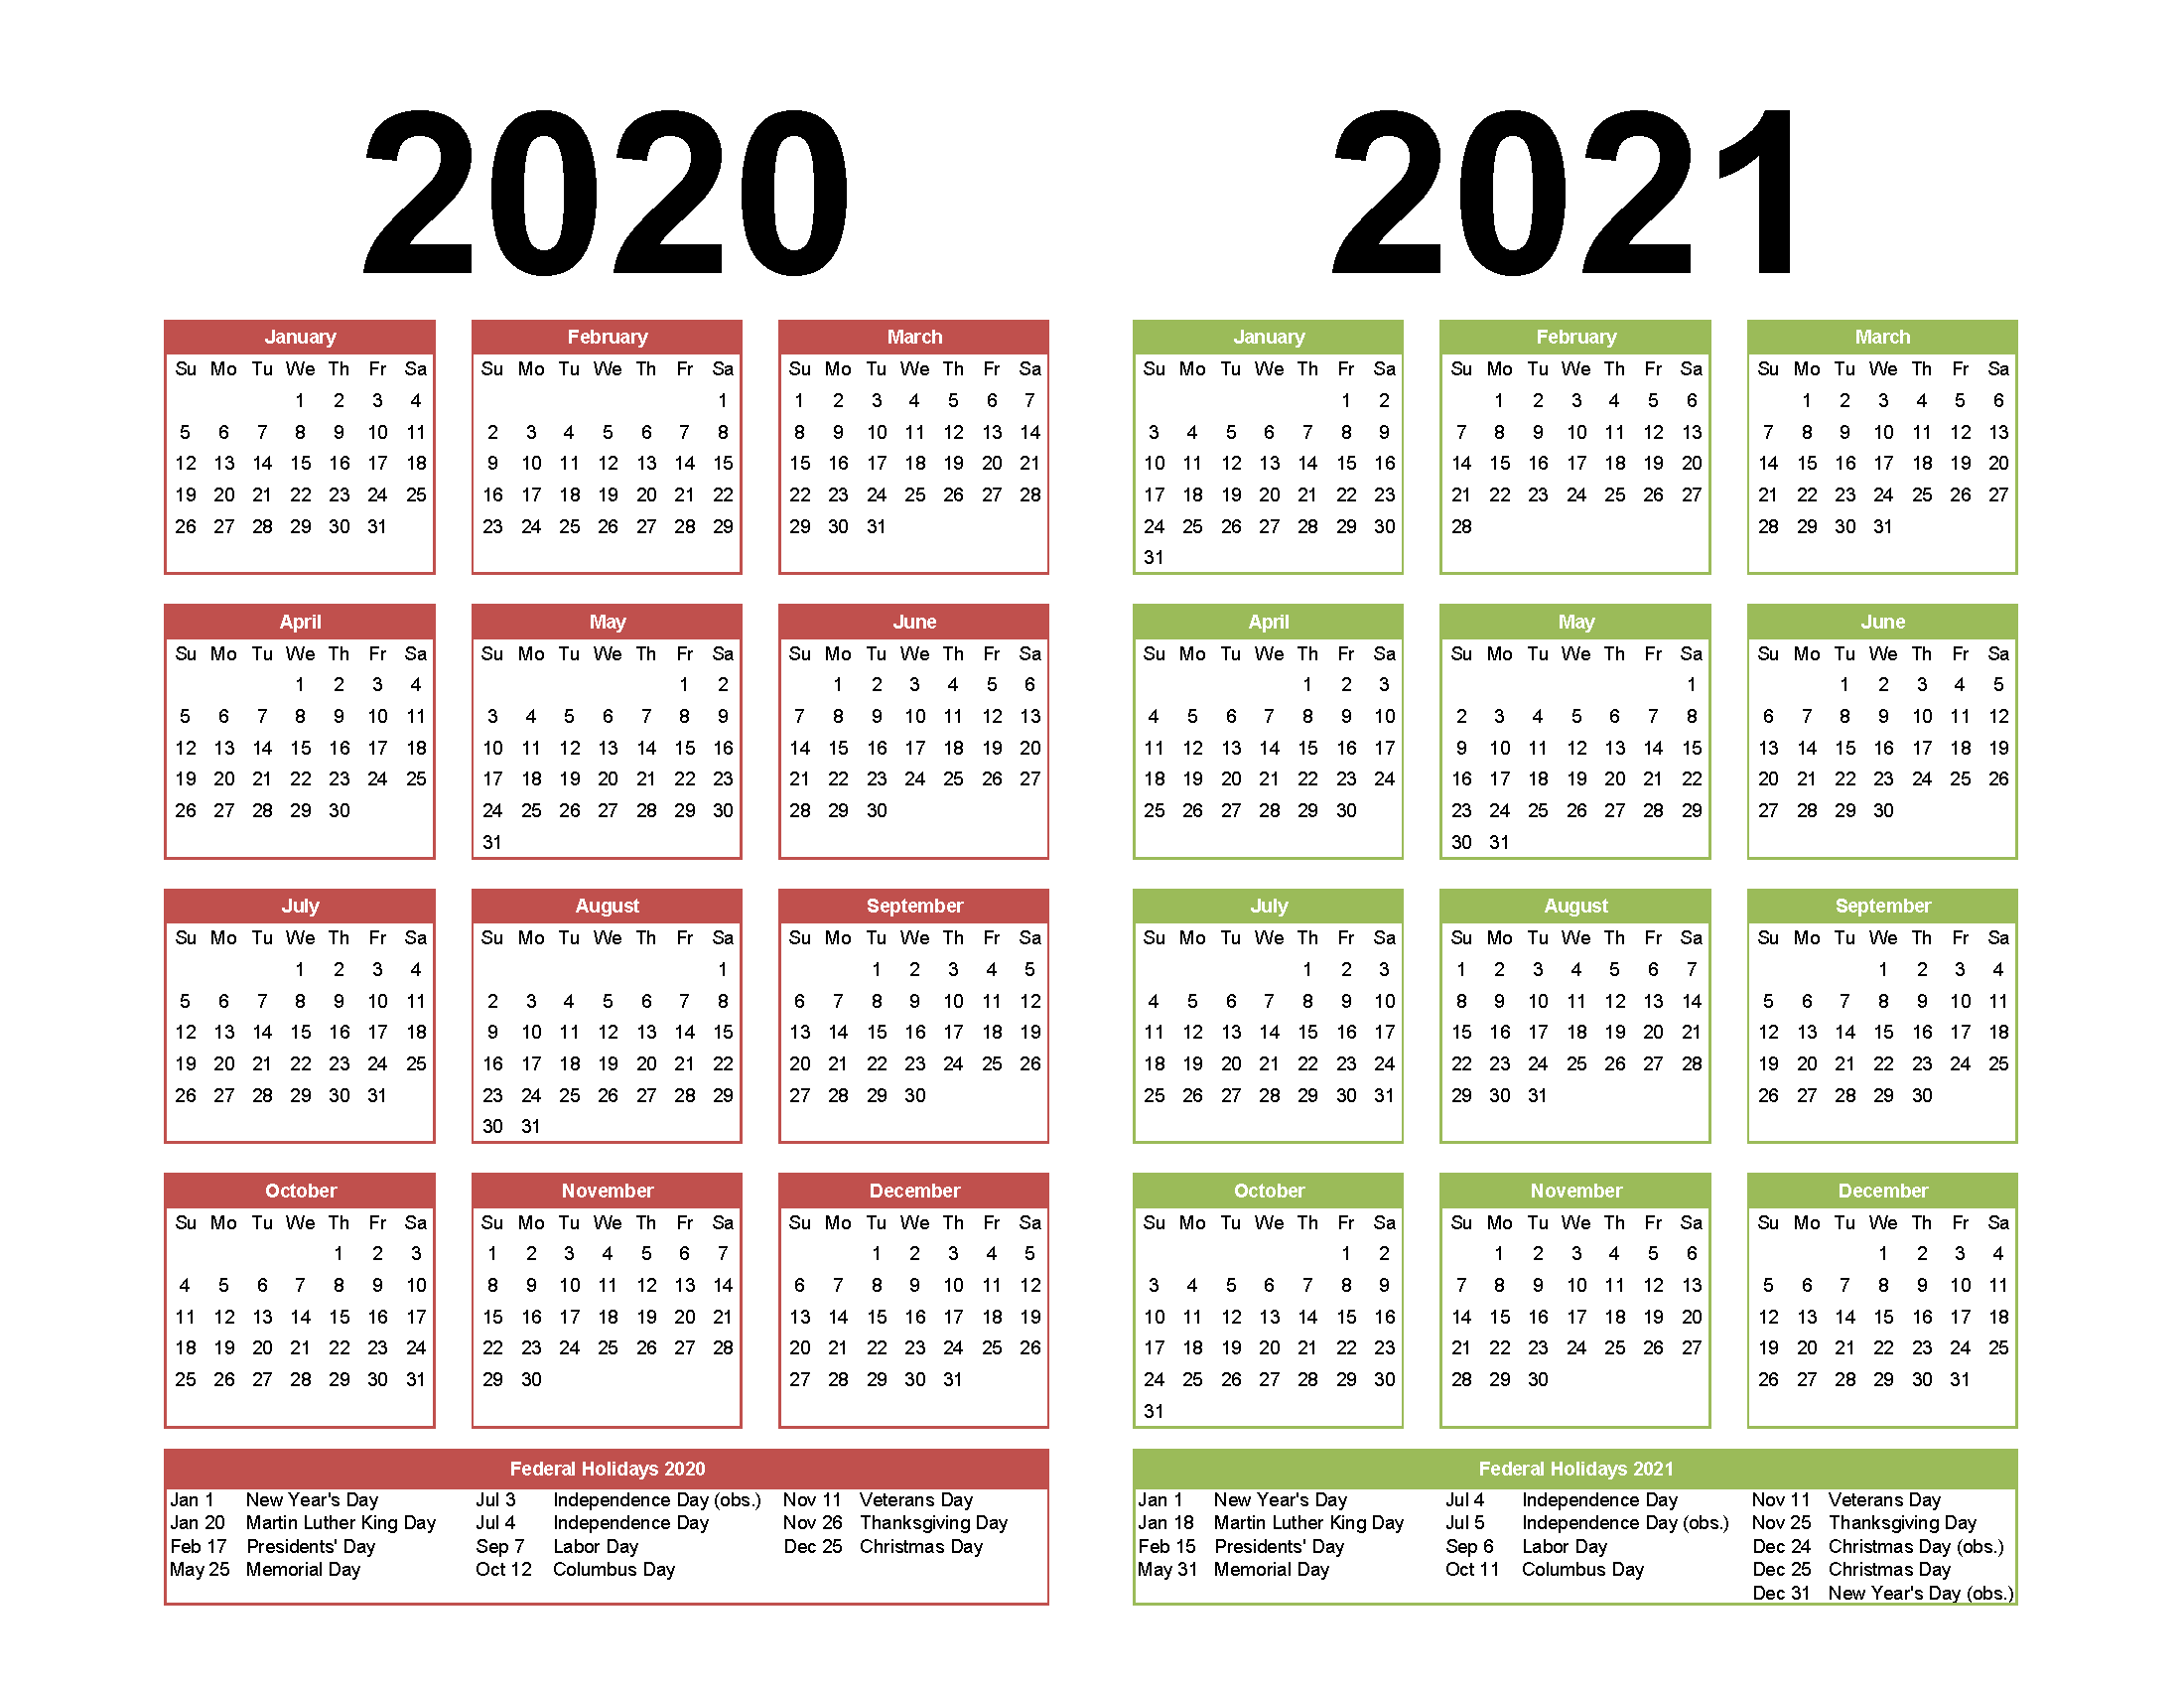 2 Year Calendar Printable 2020 2021 Word, PDF, Image